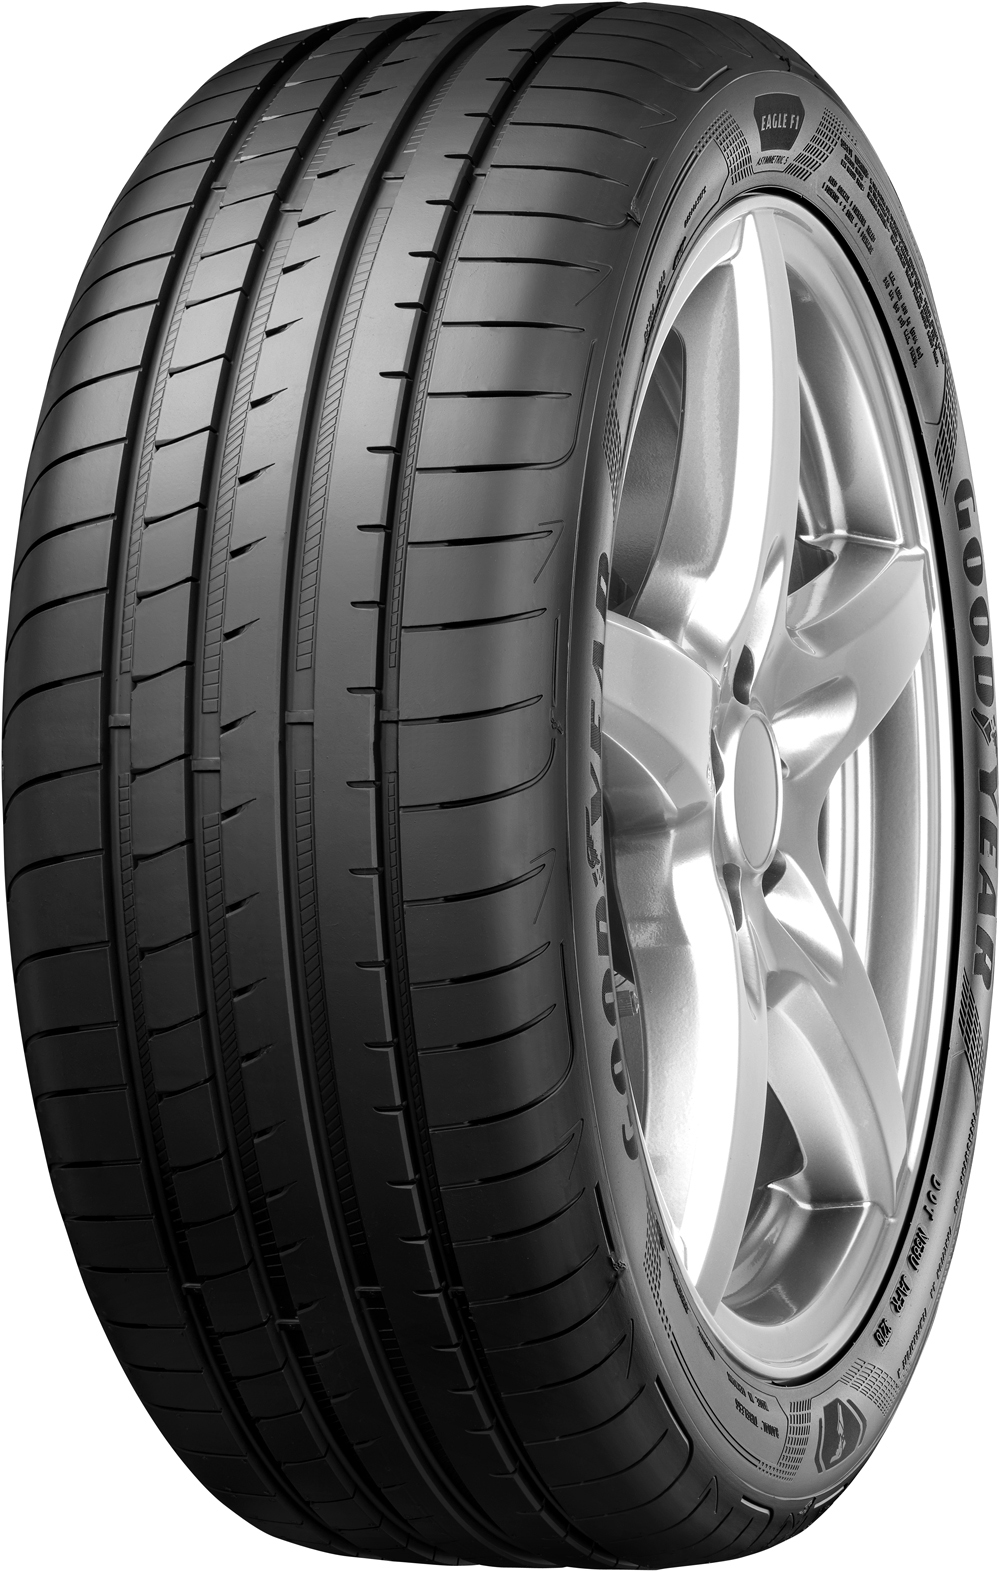 GOODYEAR EAGLE F1 (ASYMMETRIC) 5